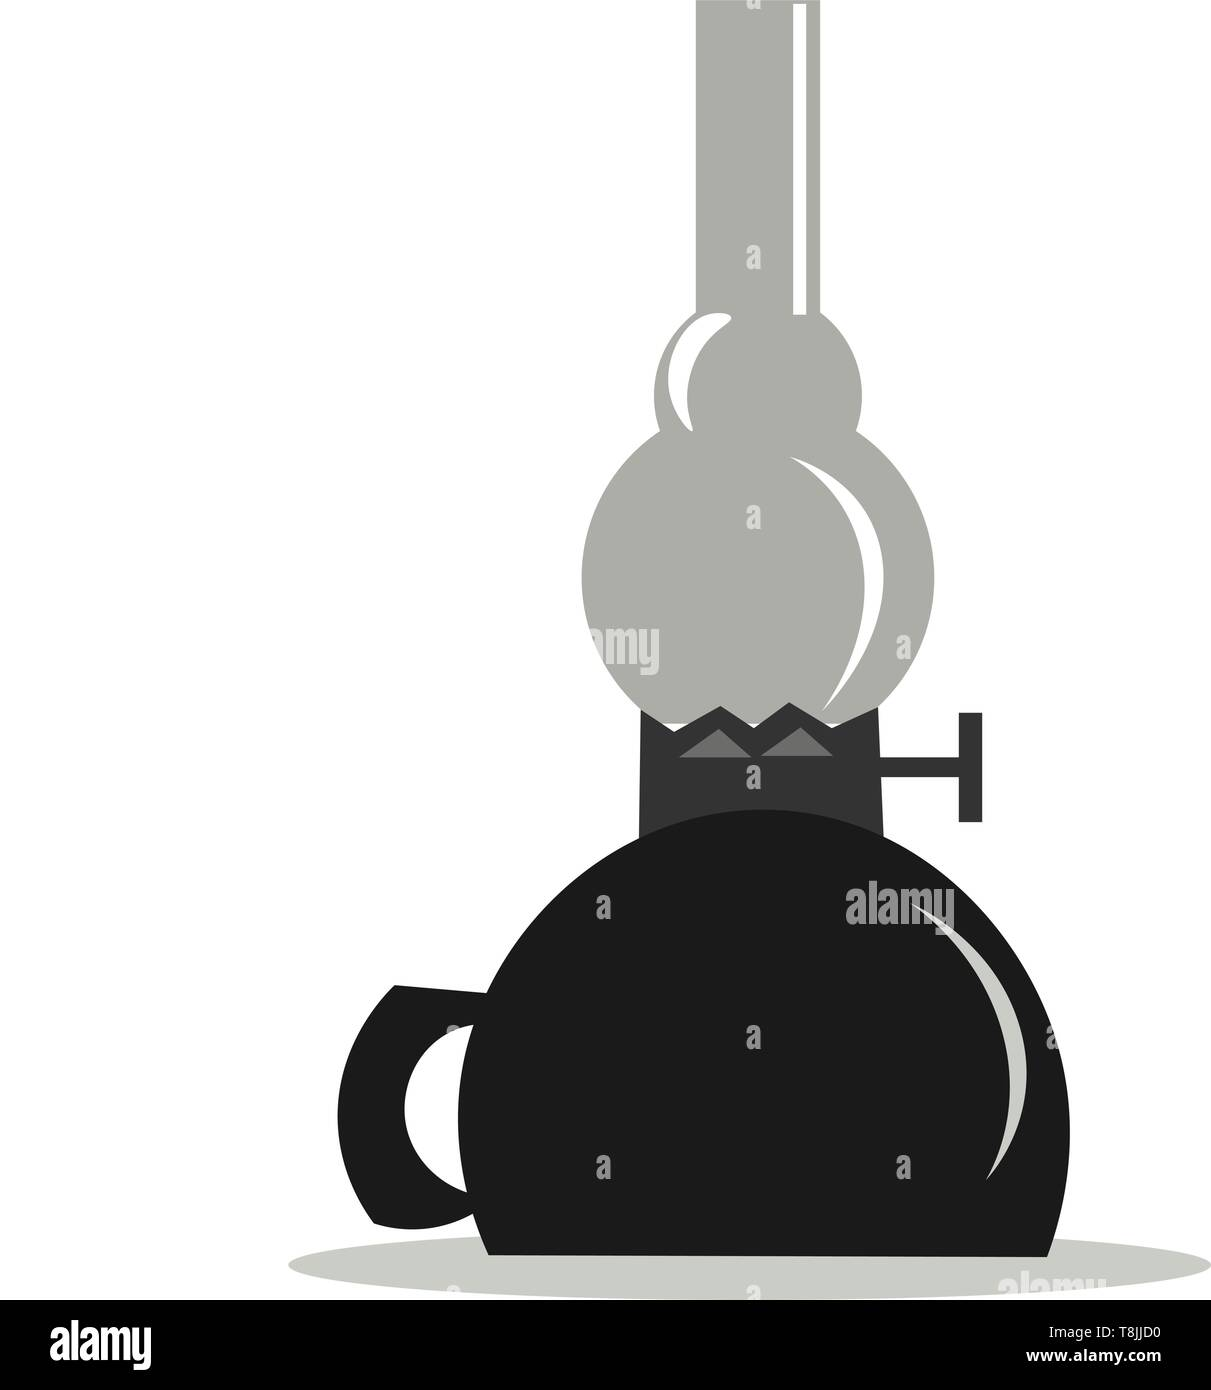 A kerosene lamp with gray glass and a black base, vector, color drawing or illustration. - Stock Image